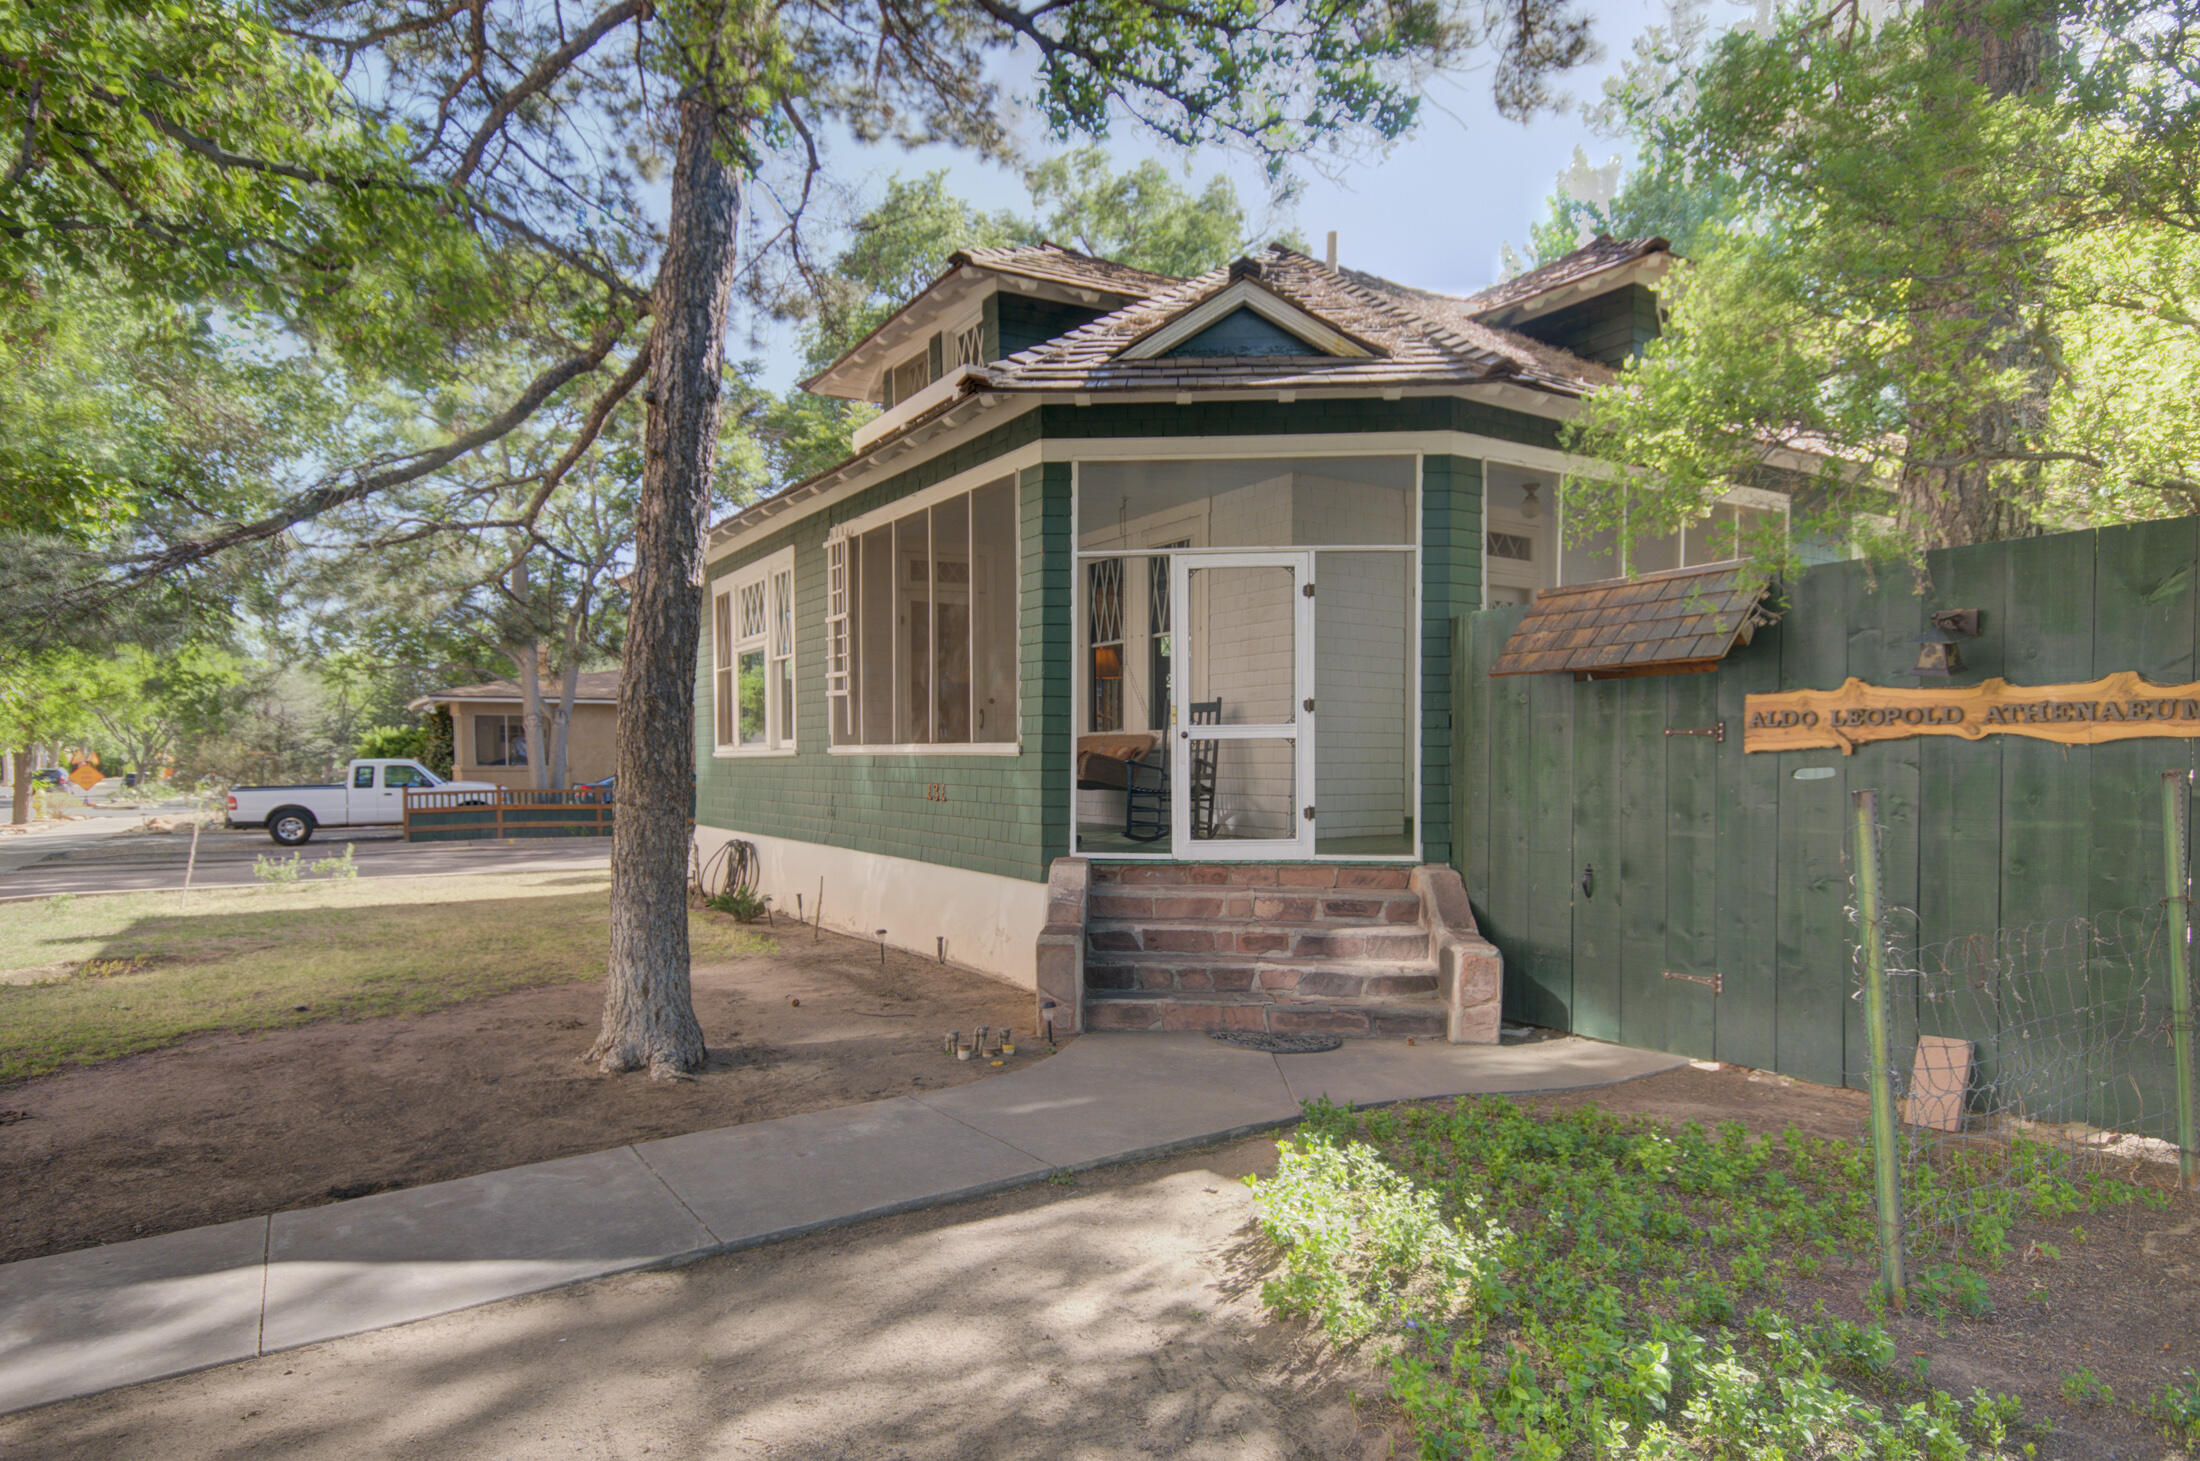 Stunning and one of a kind! Rare opportunity for a craftsman bungalow in historic Huning Castle neighborhood. Spacious, charming courtyard; includes 2-- 450 sq. ft. studios for INCOME GENERATING opportunity! Backyard  includes 250 sq. ft. workshop space with backyard access. Registered as part of the Aldo Leopard historic district. Gorgeous home includes original wood work, diamond paned windows, built-in buffet and bookcases. Coffered ceiling crowns the living room with striking flagstone fireplace. Douglas fir red cedar shingle roof completed in 2011 and oiled in 2019. Space to spread out!  Wonderful neighborhood! Pergolas, trees, native plants offer serenity in the midst of city life.Walk to bosque,biking  trails, downtown,Old Town,EZ access Facebook, Netflix. A gem, & OWNER FINANCING!